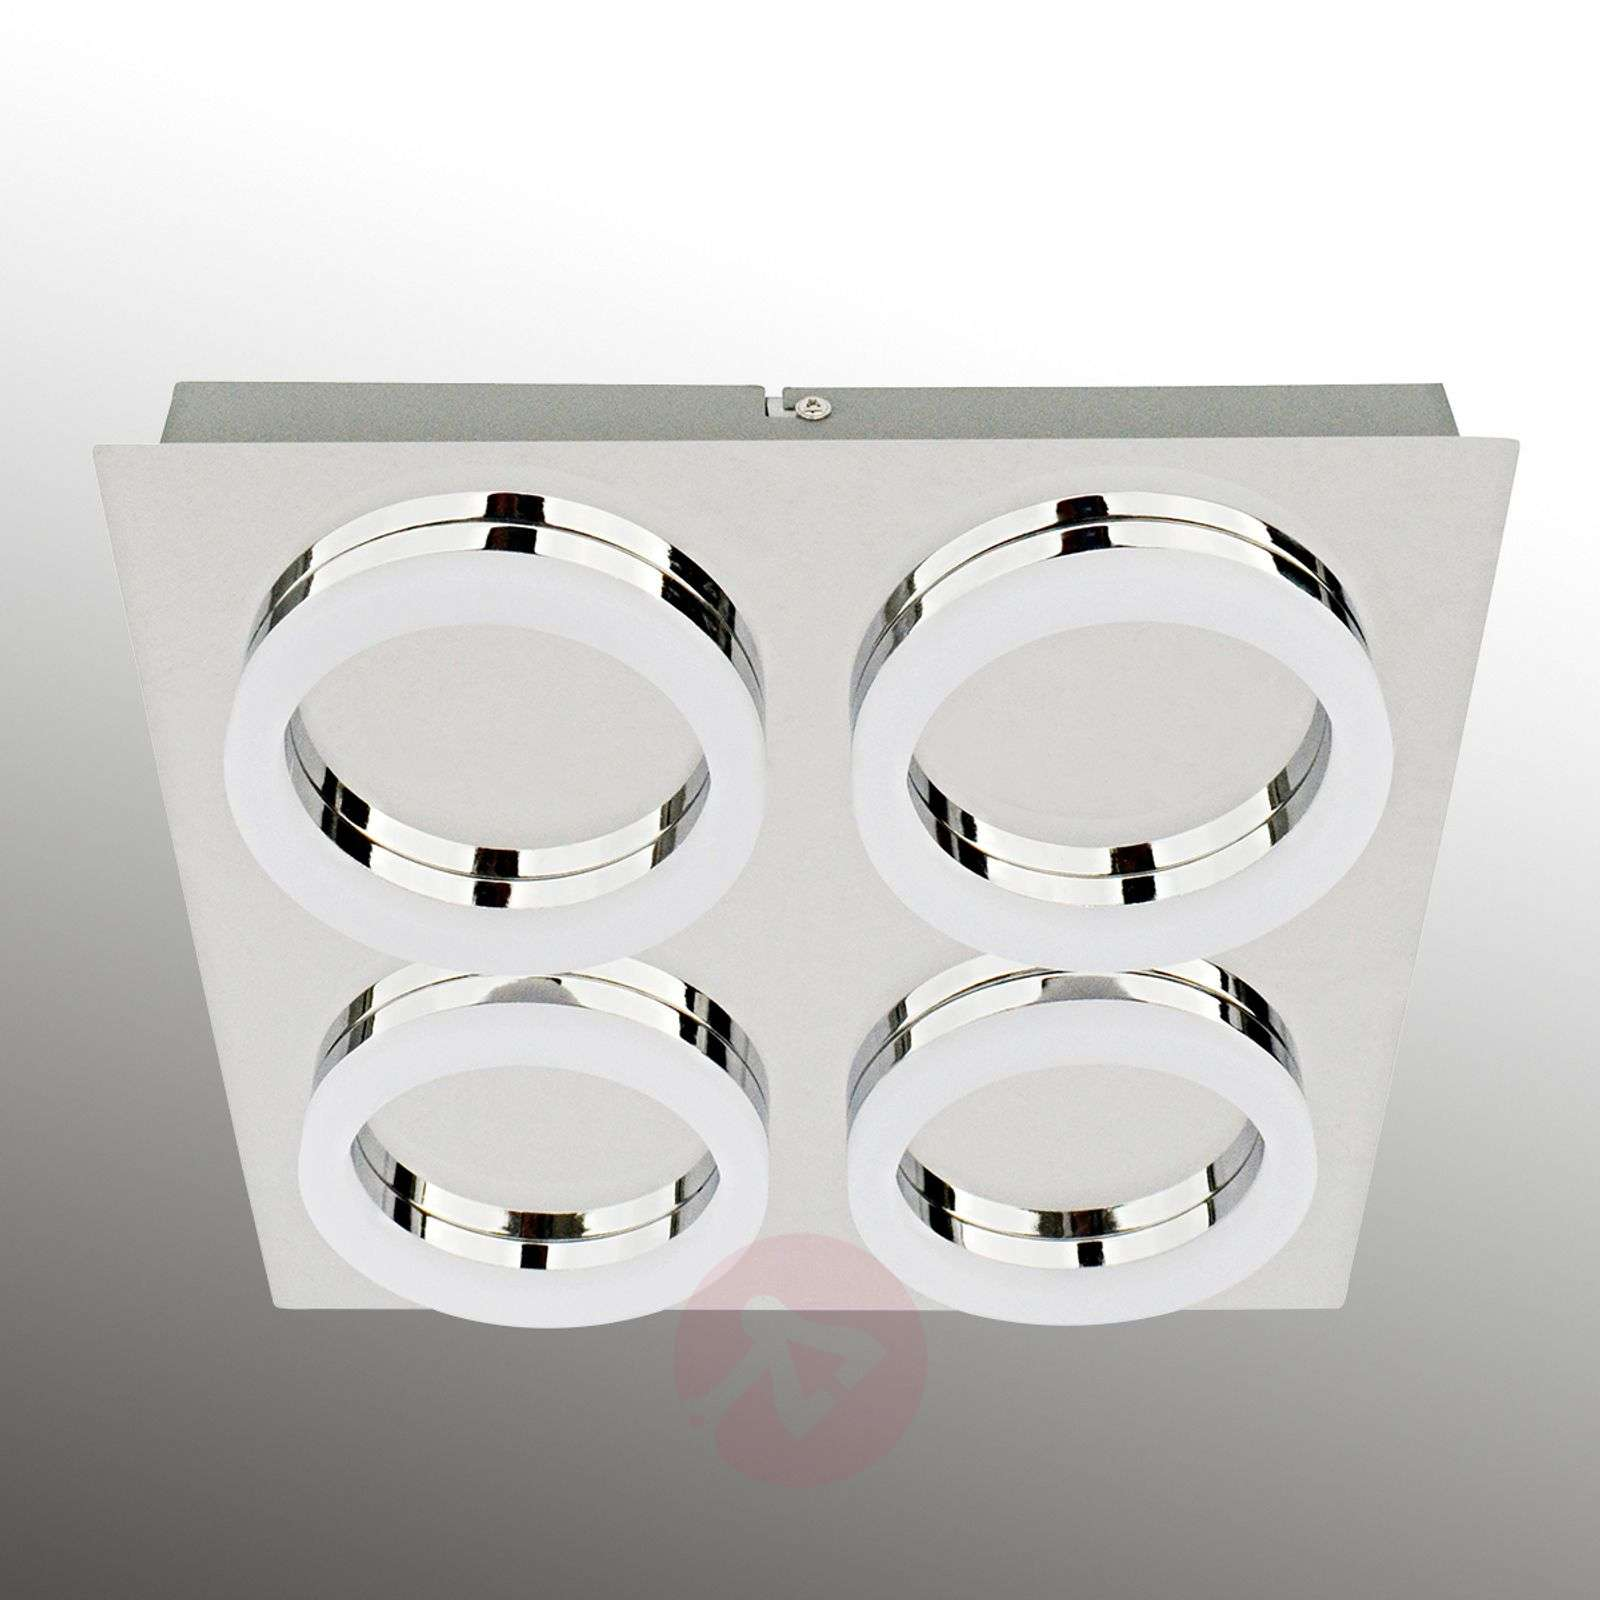 Square-shaped LED ceiling lamp Ring-6022345-01